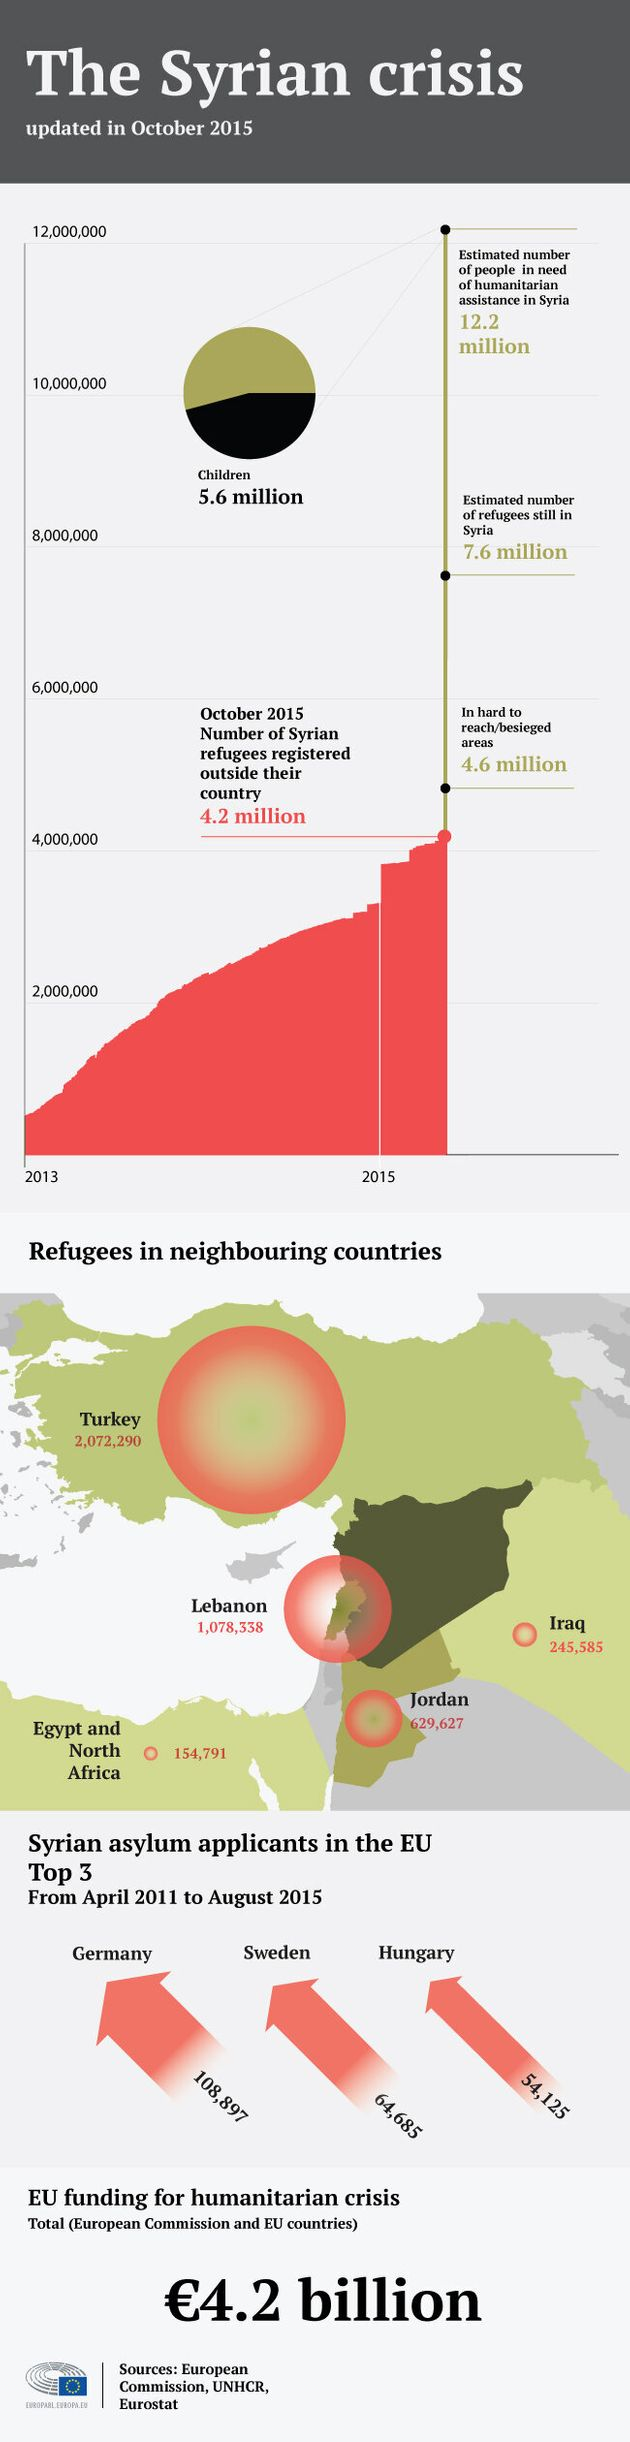 The Syrian Crisis in Figures: Refugees, Asylum Seekers, EU